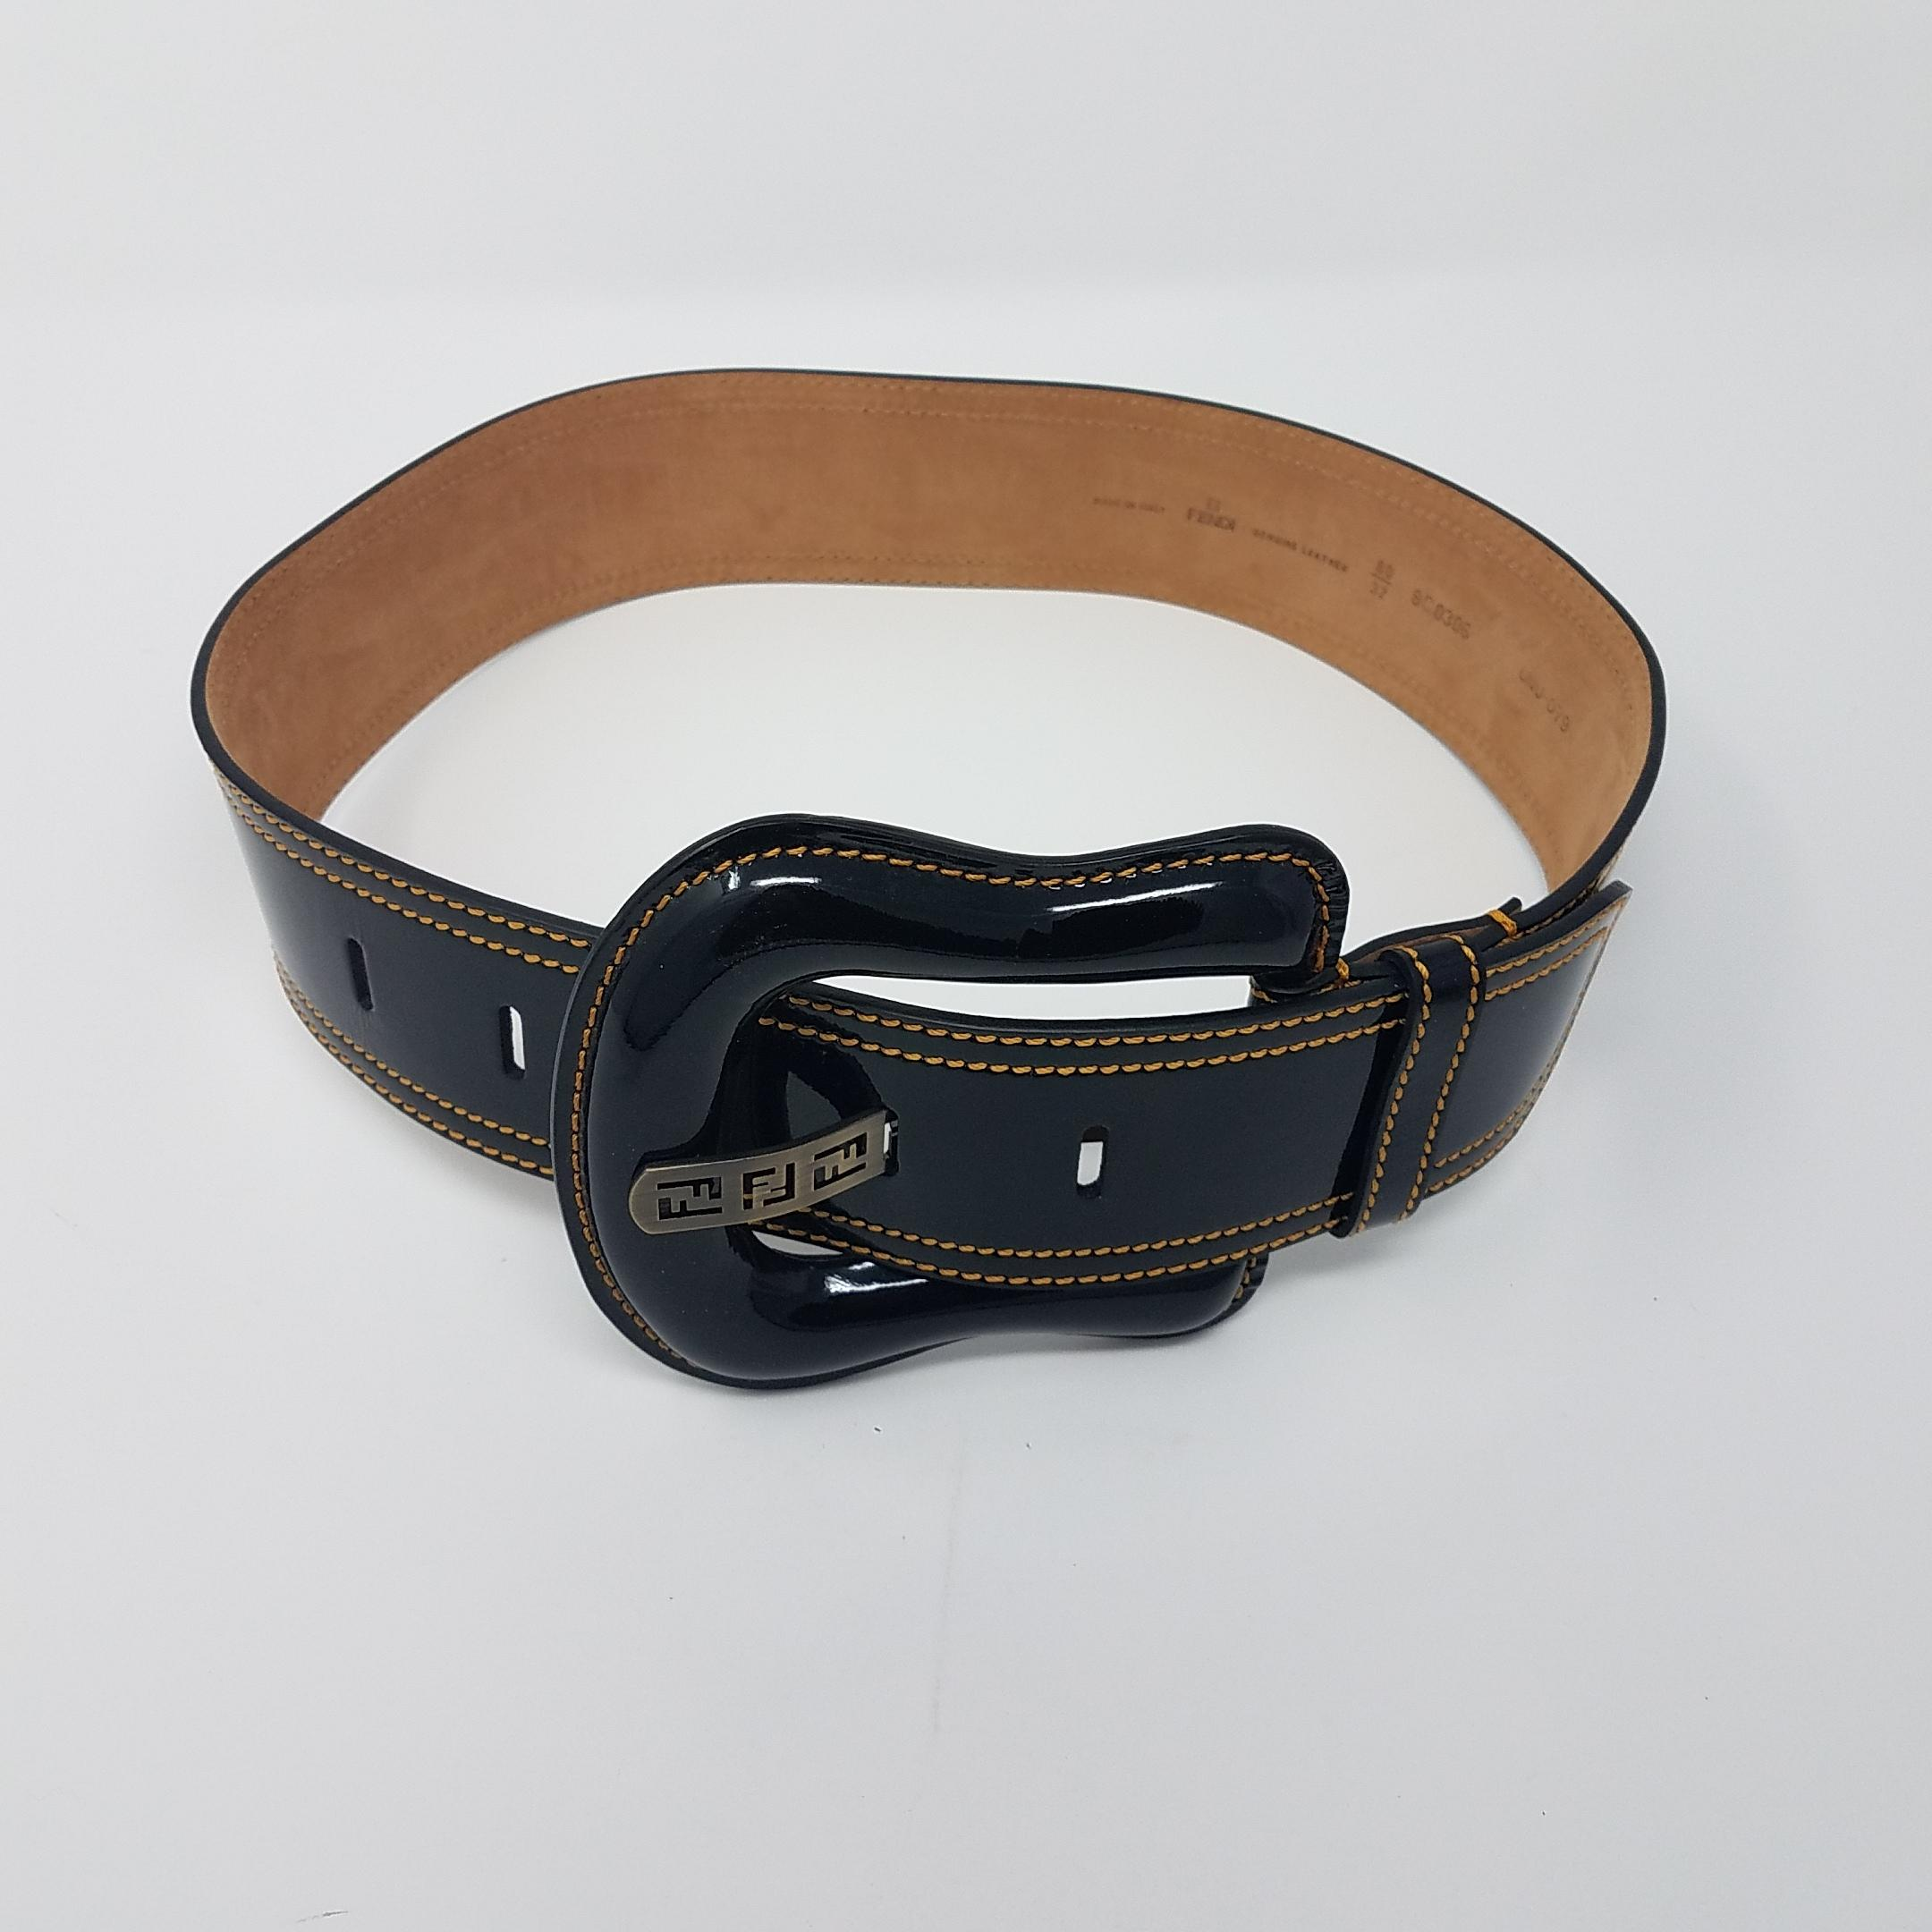 eeb4675dfd9f ... discount code for fendi black patent leather zucca logo wide waist m  belt tradesy 392b6 a096c